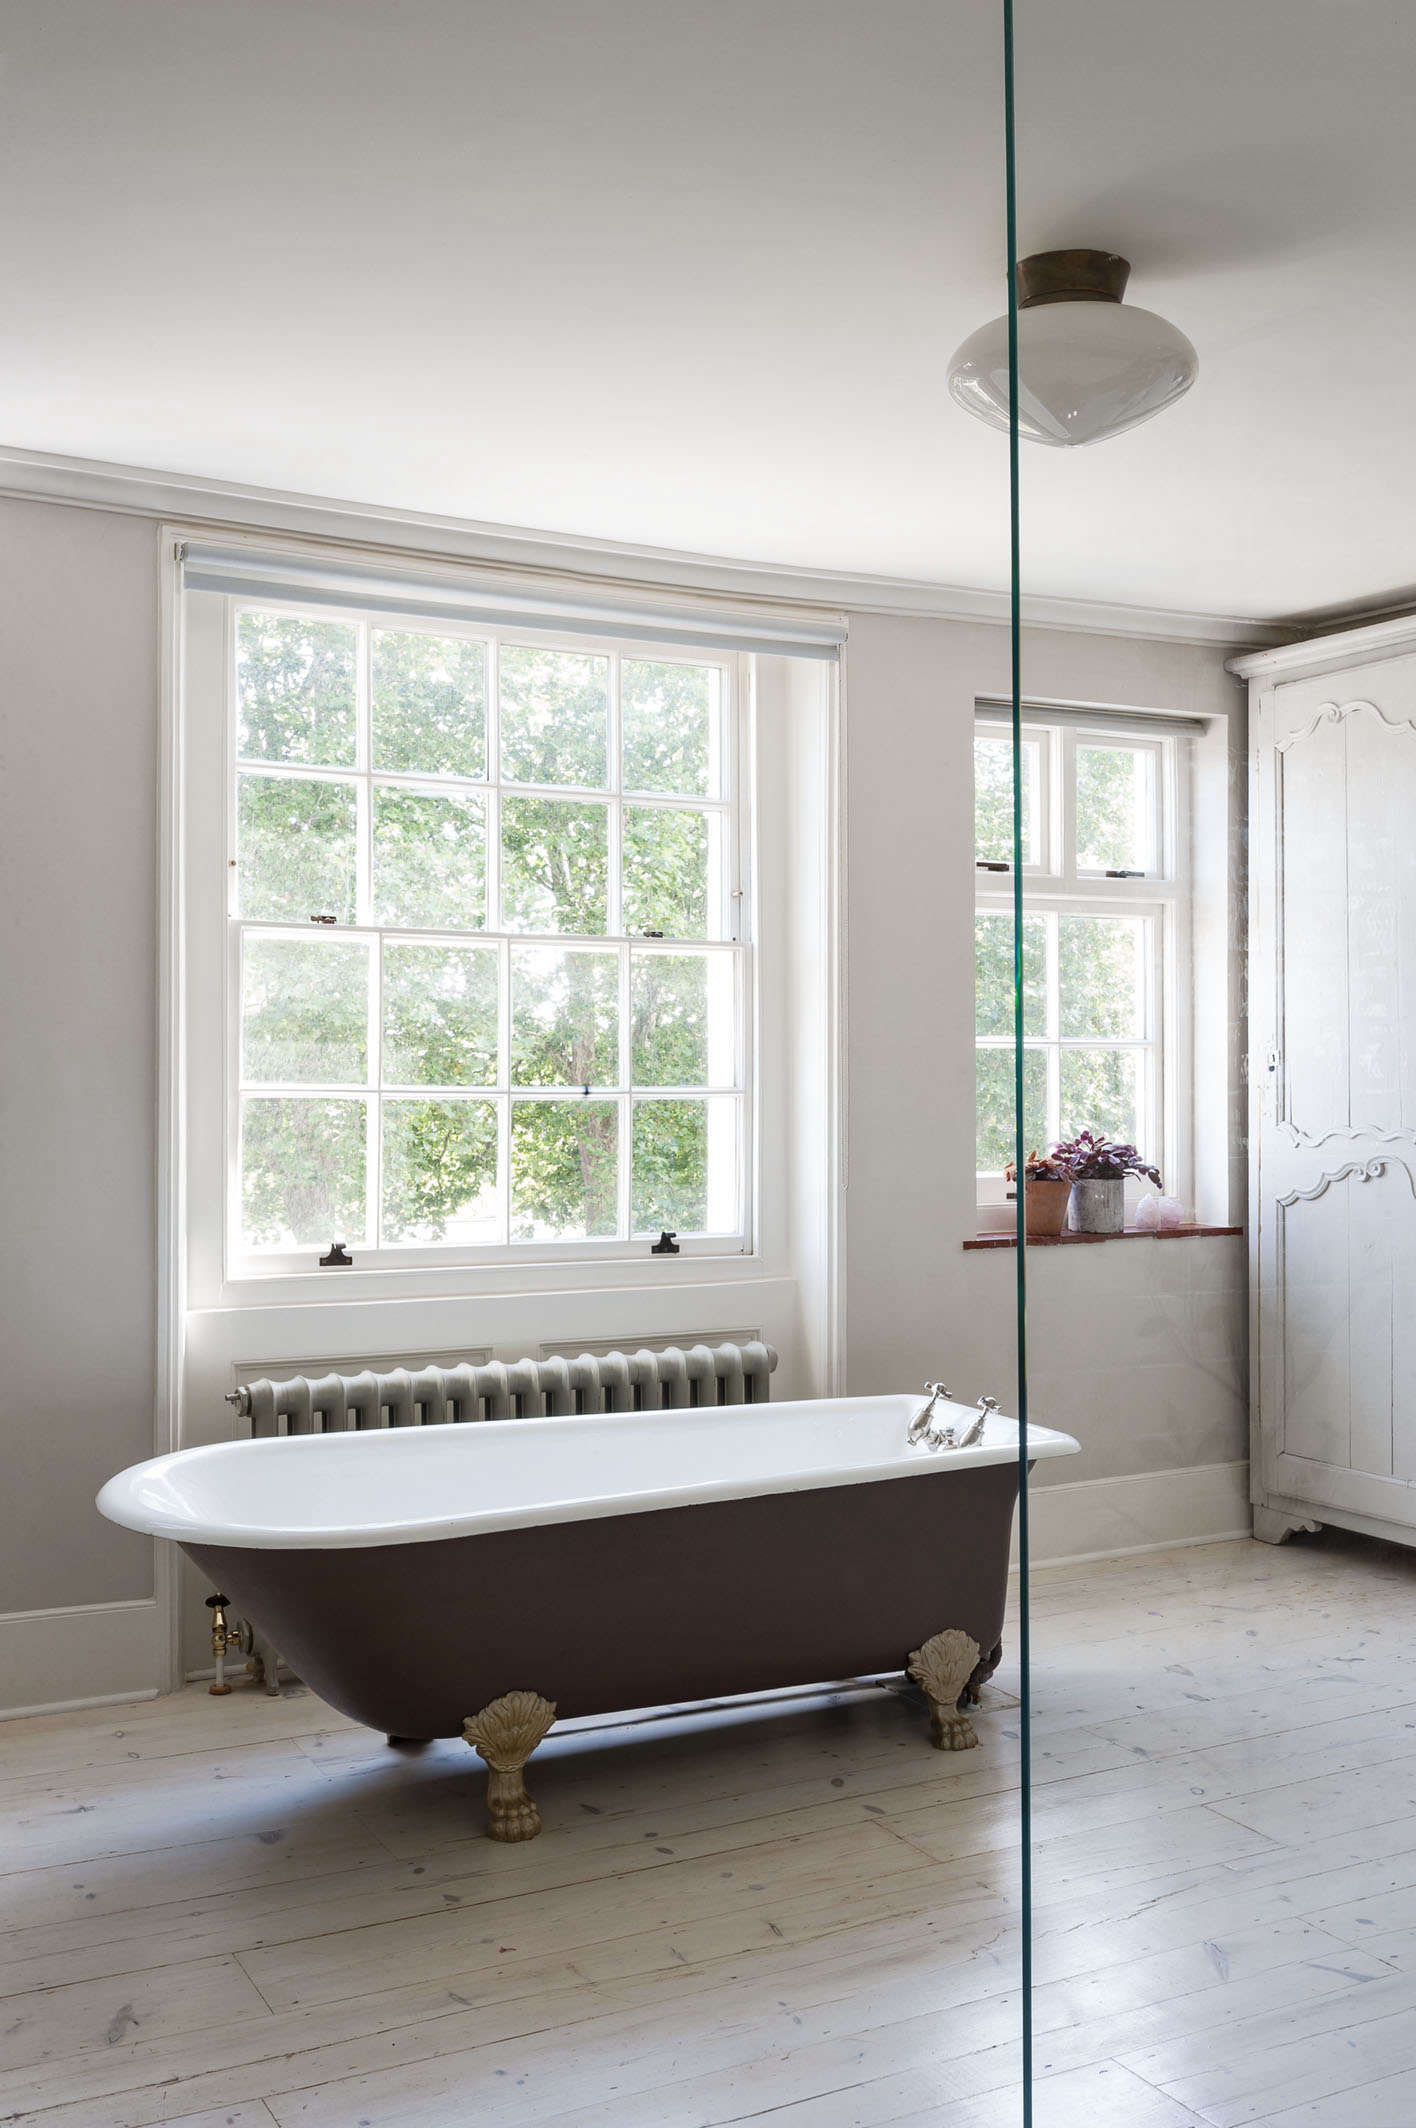 Remodeling 101: Romance in the Bath: Built-In vs. Freestanding ...